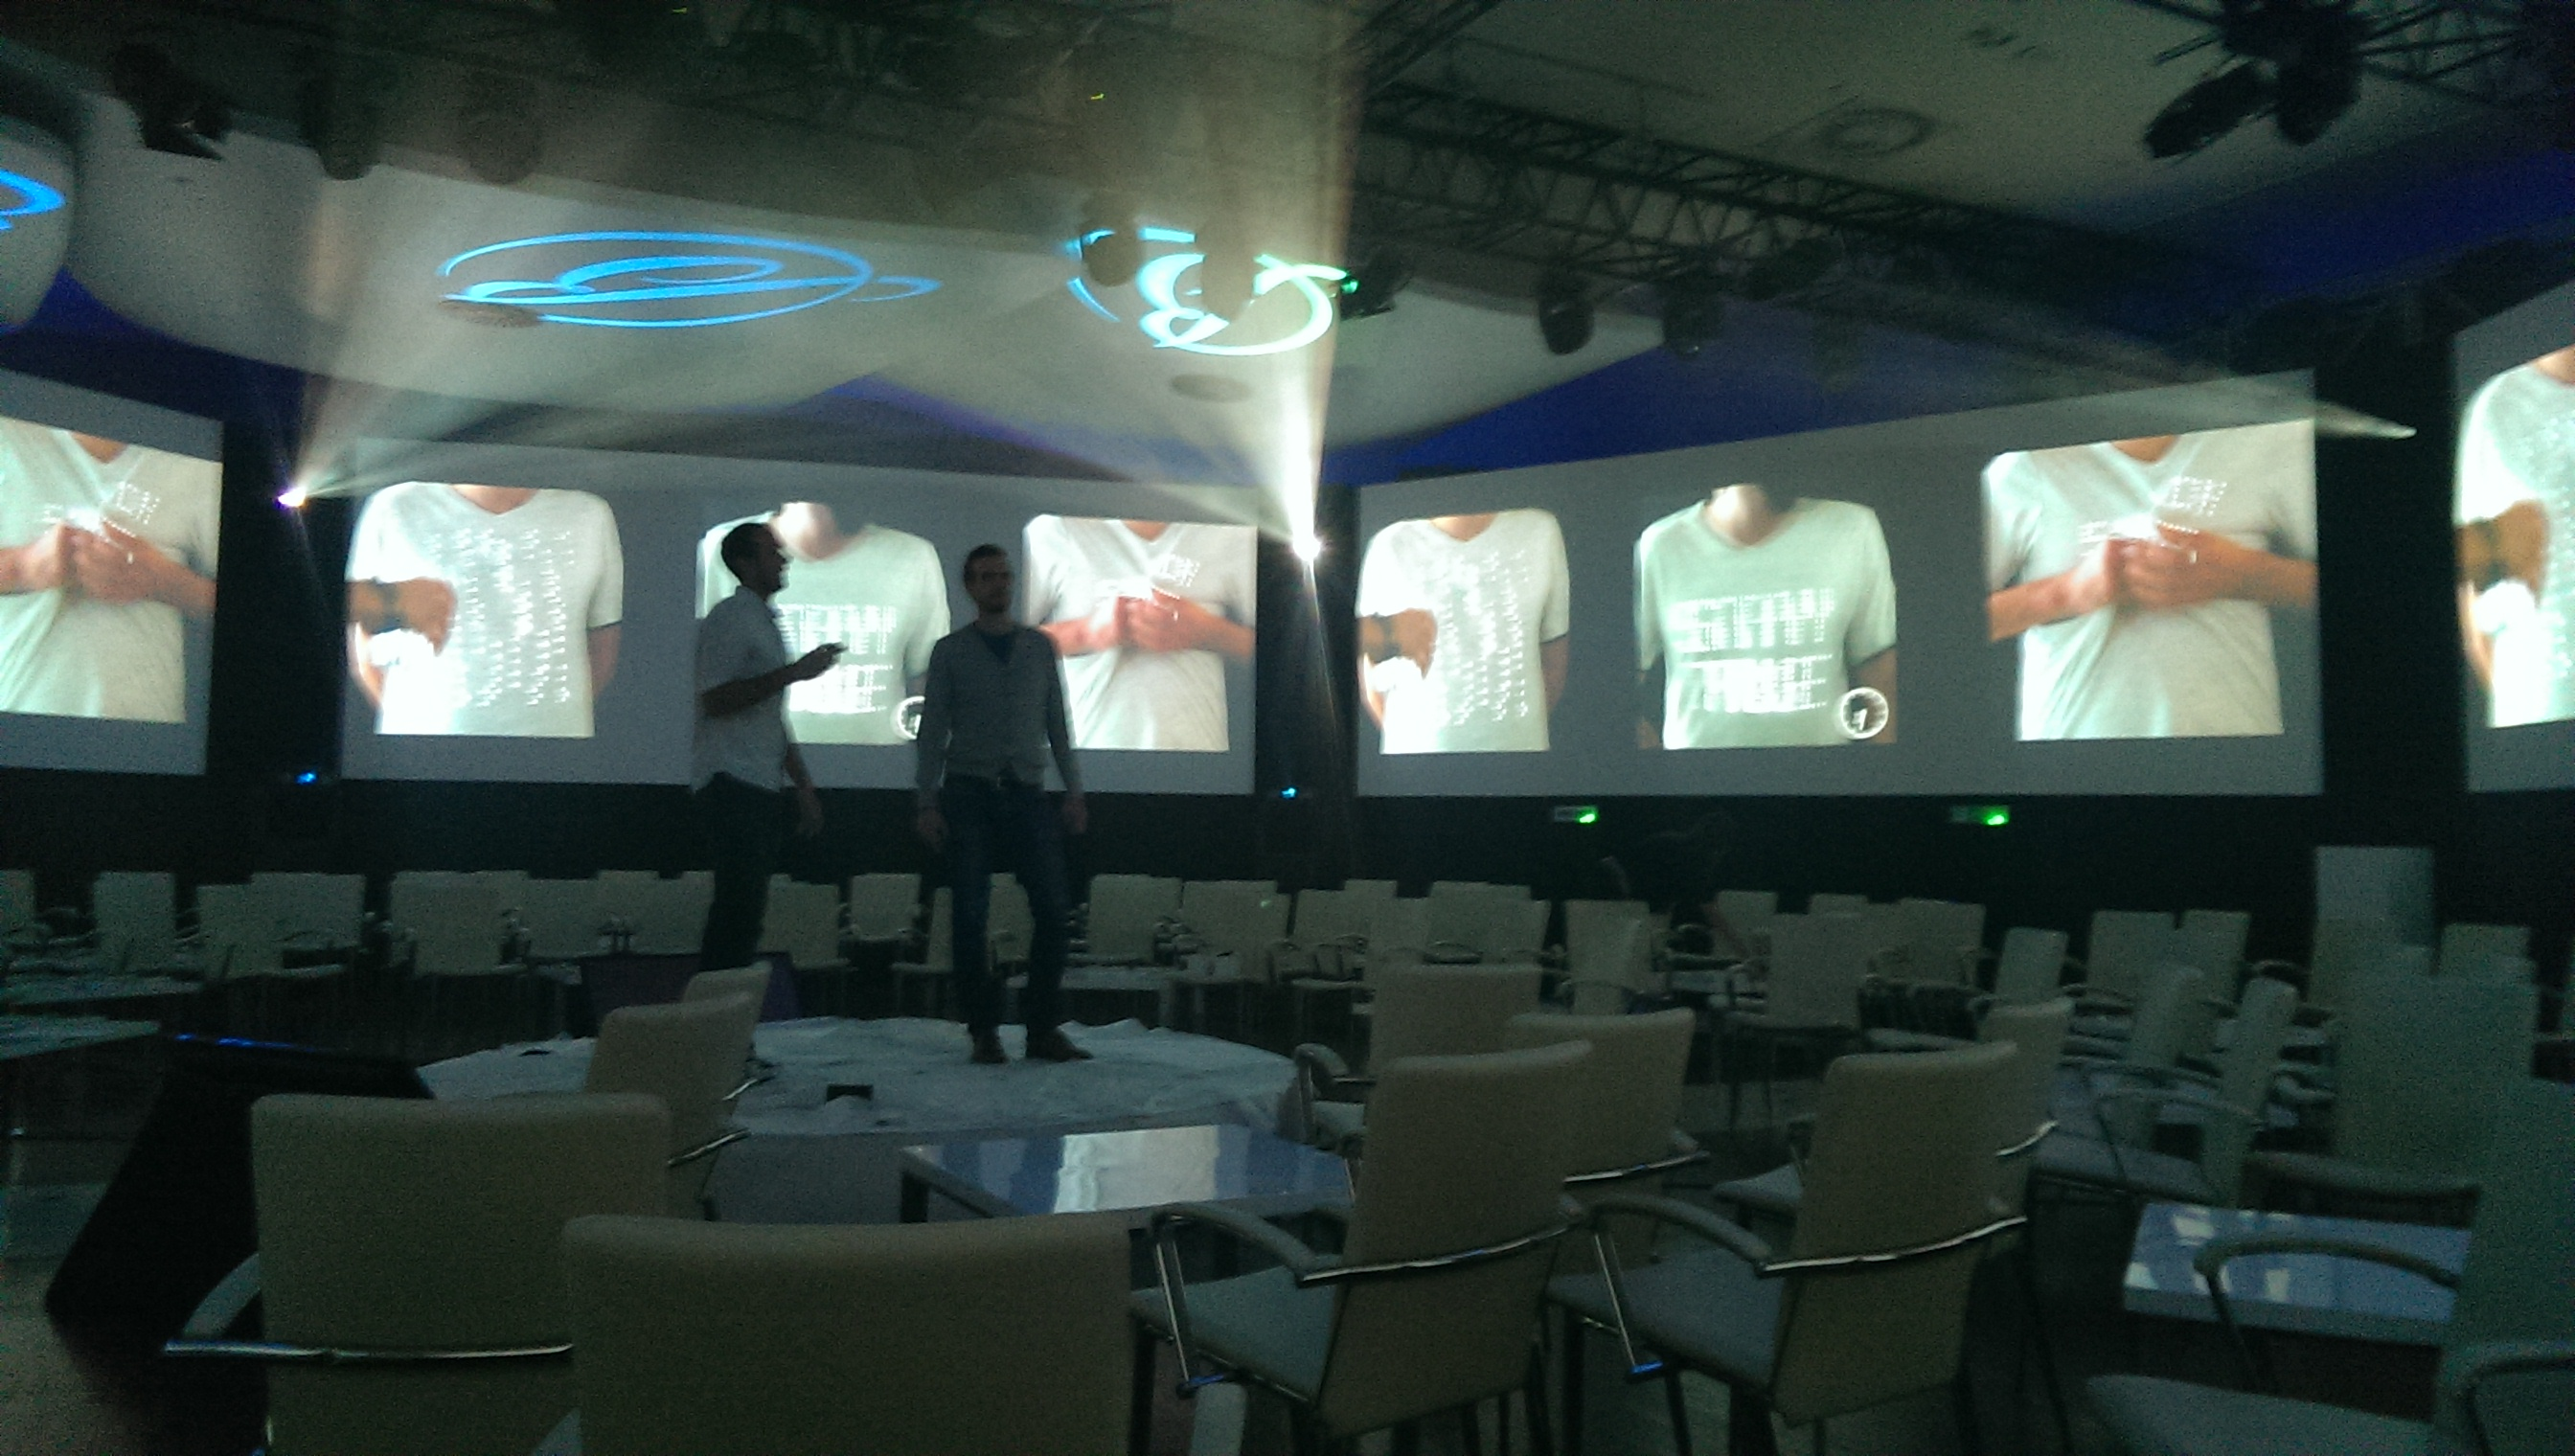 The tshirtOS debut at the Budapest presentation for Ballantine's